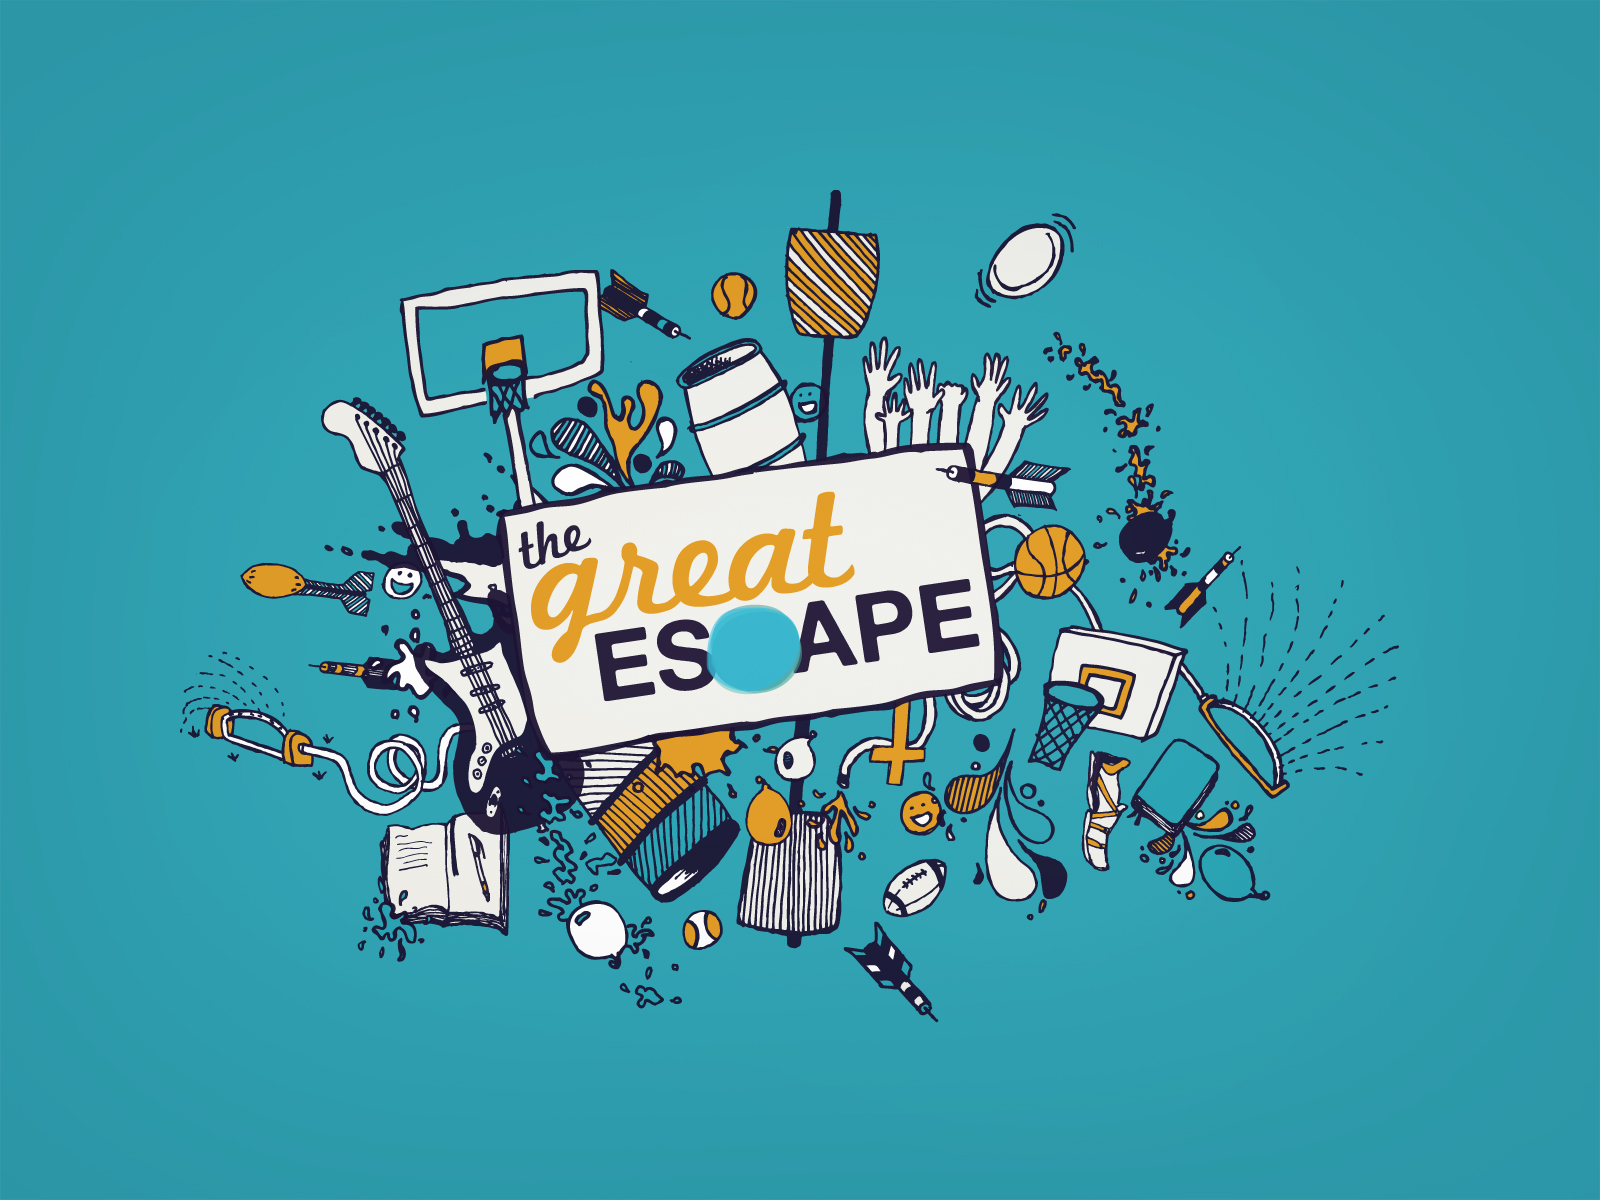 The Great Escape Wallpaper (1600x1200)